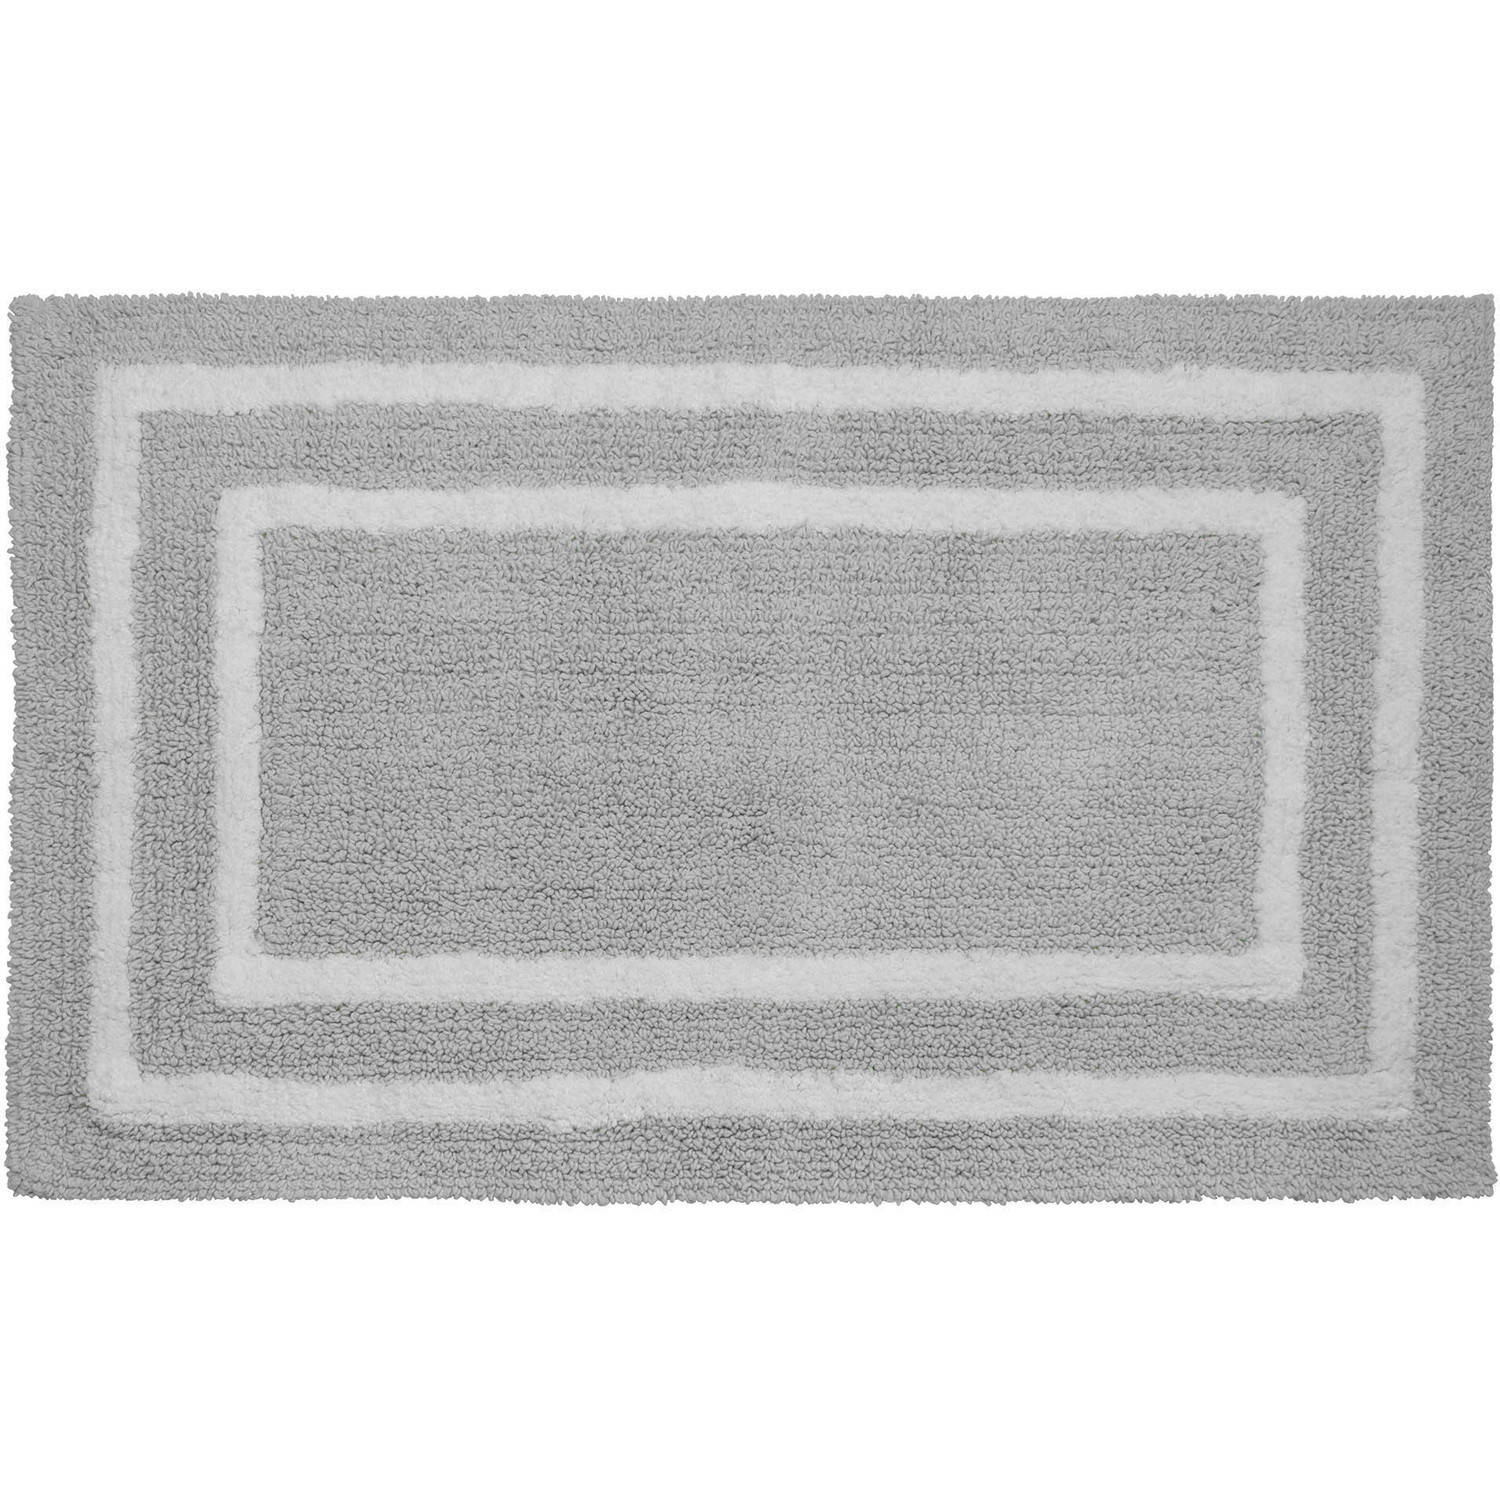 "Jean Pierre Reversible Cotton Plush Double Border 21"" x 34"" Bath Mat"